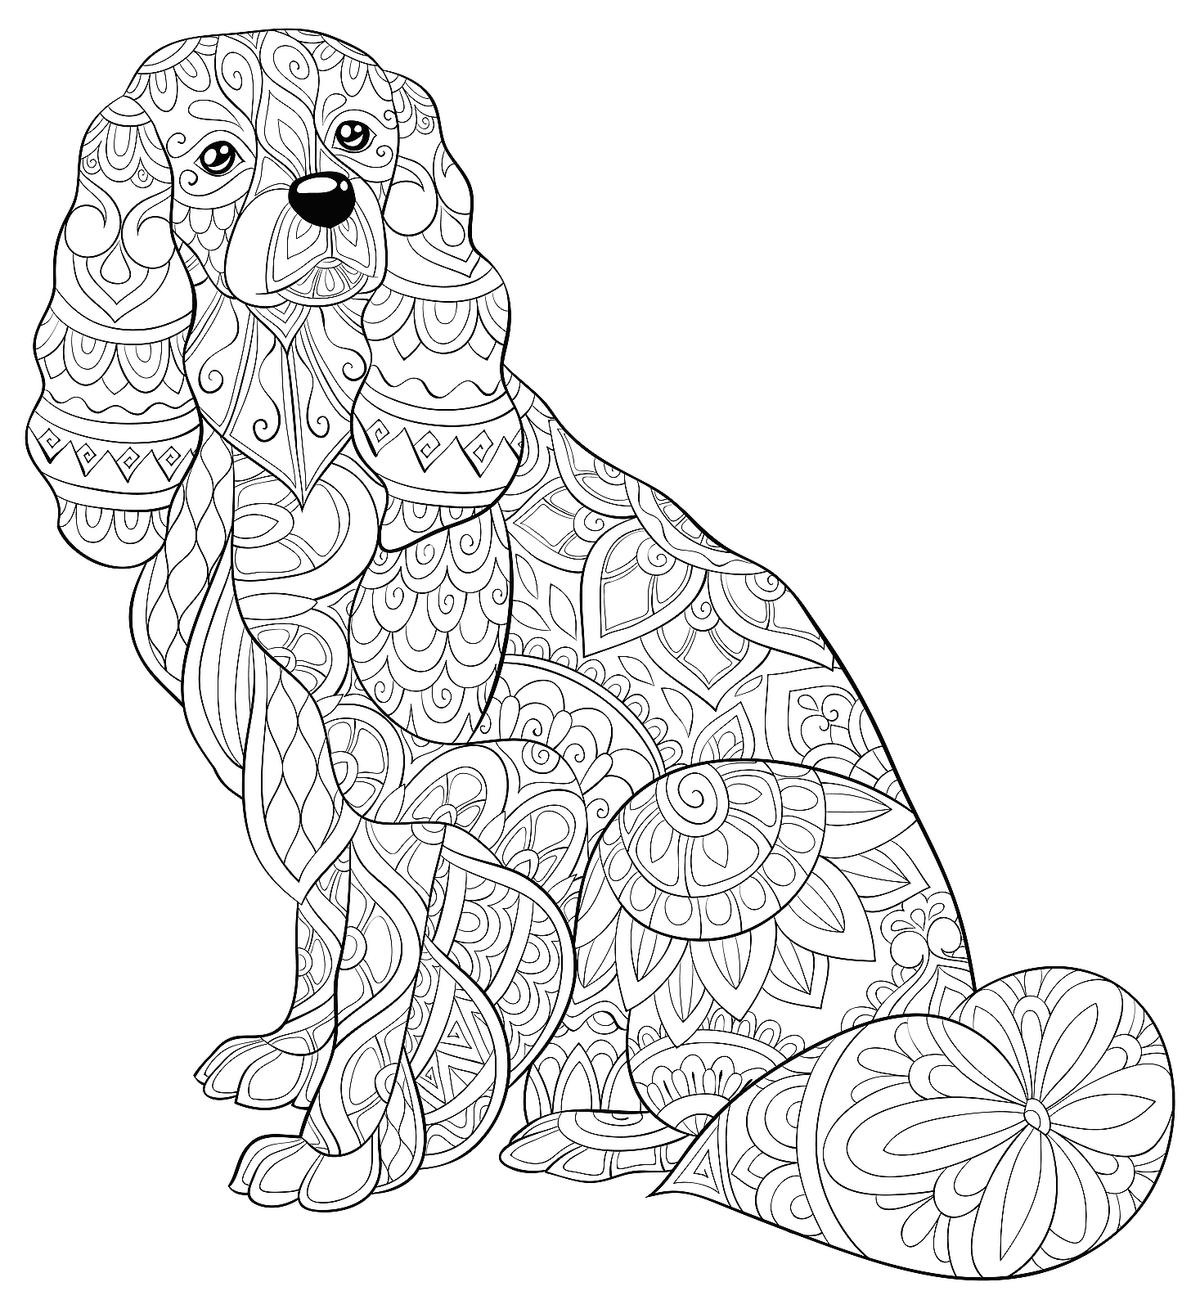 colouring pages of dog baby dog coloring page free coloring pages online pages of dog colouring